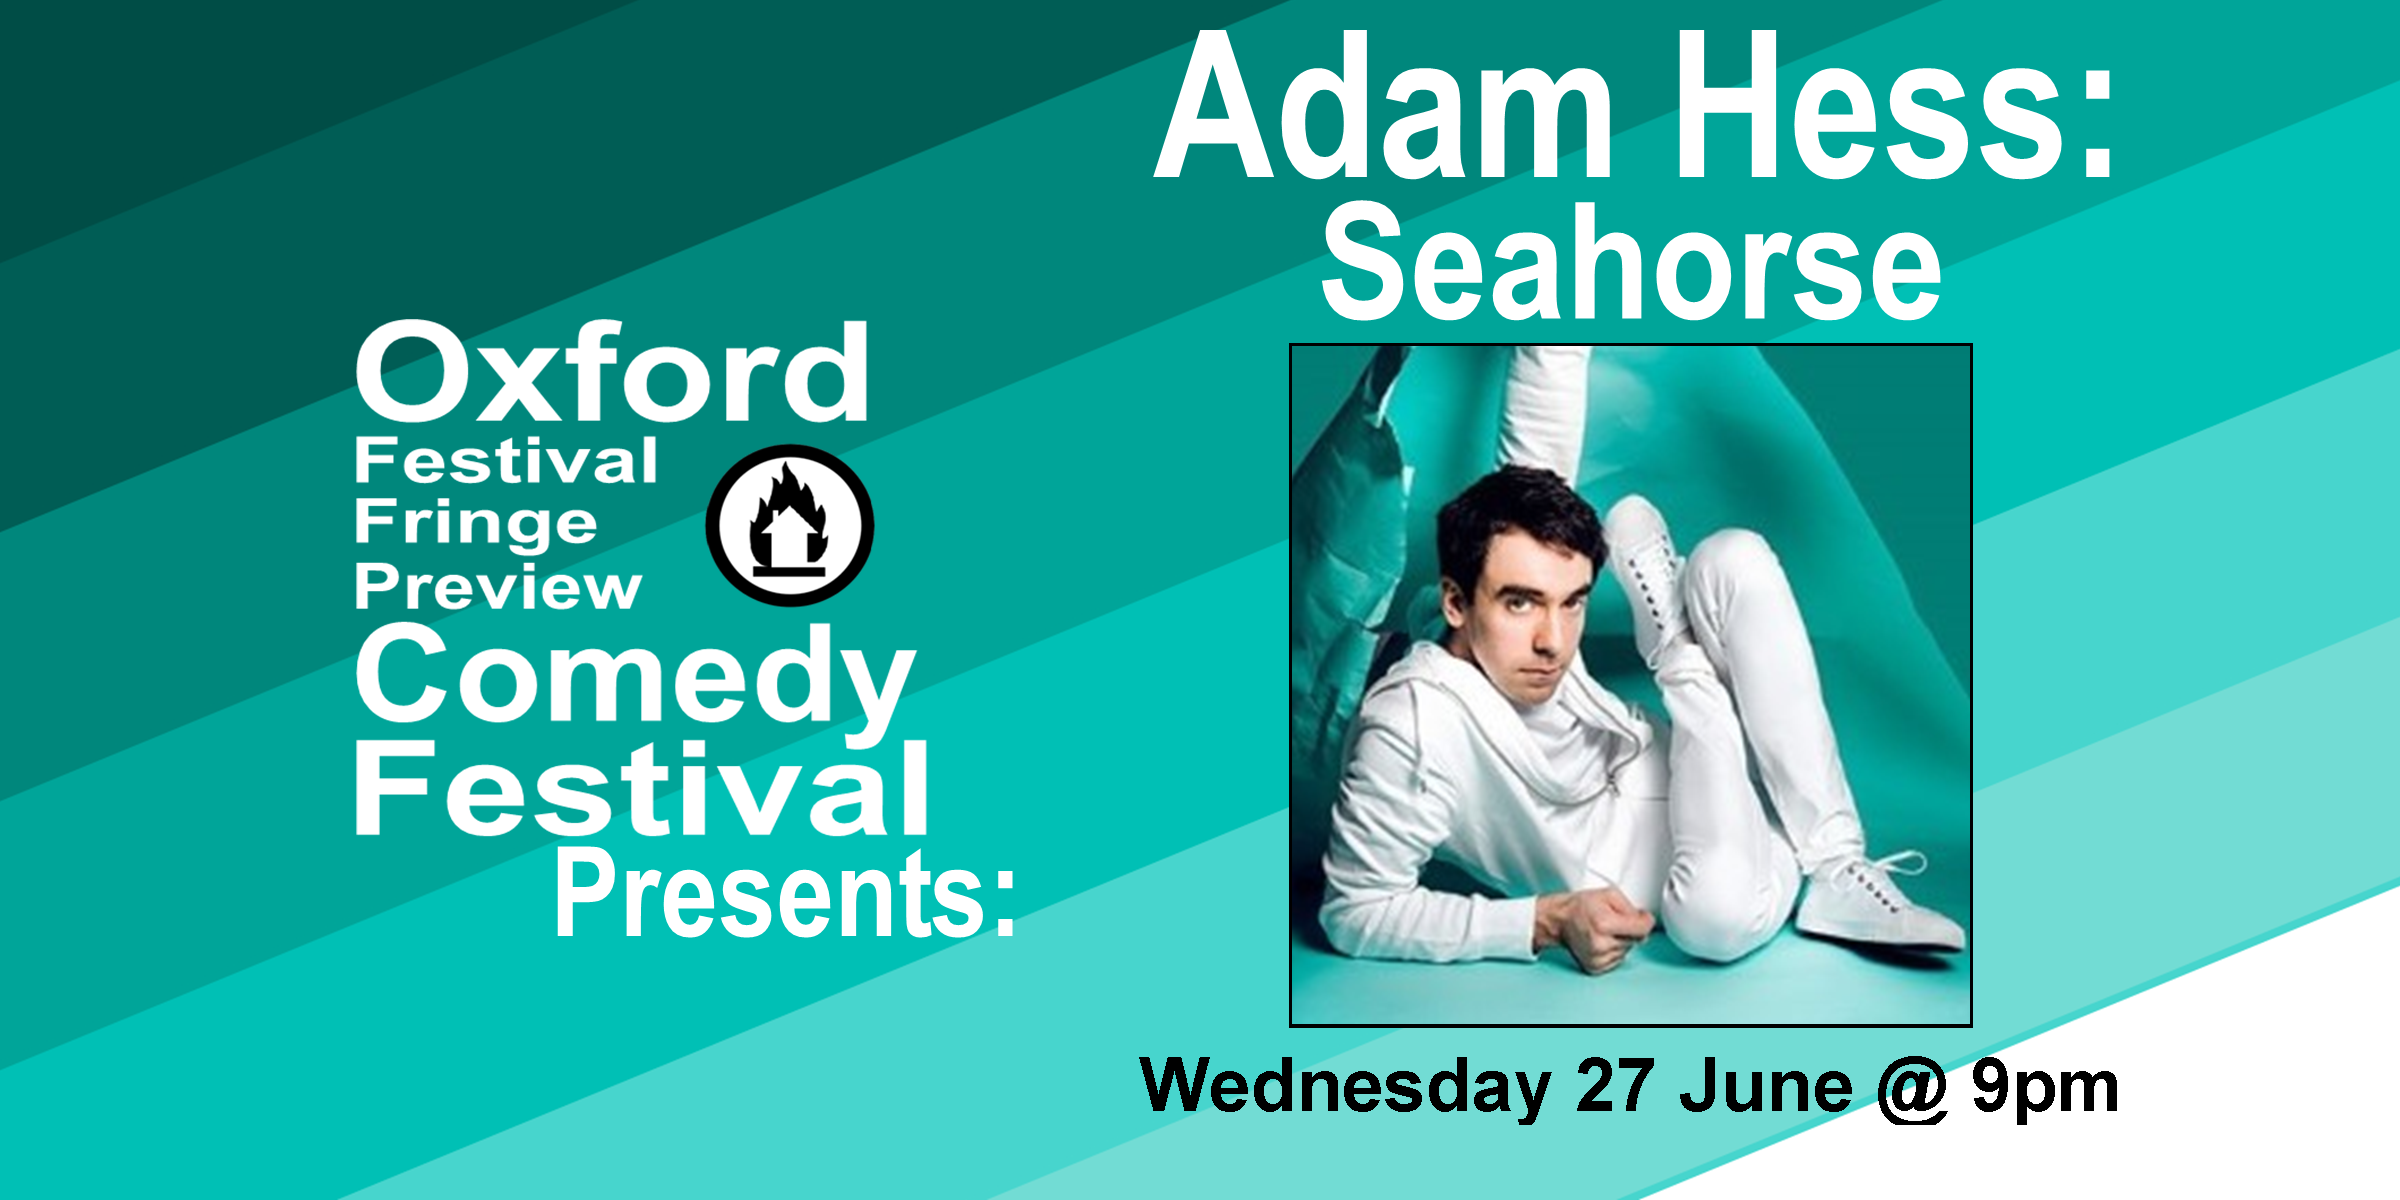 Edinburgh Comedy Award Best Newcomer nominee, as seen on Tonight at the Palladium and Live at the BBC. Adam can't imagine the Queen with wet hair and he can't get his head around the fact his cat has a grandad. A show about how he almost ruined his life this year, leaving him with nothing, and how he's trying to get it back on track. 'I've seen few shows that are funnier' **** (Times). 'For high quality gags per minute there is no better comedian on the Fringe' **** (Independent).  Doors at 8:50/Show at 9pm  60 minutes   Get Your Tickets   Here